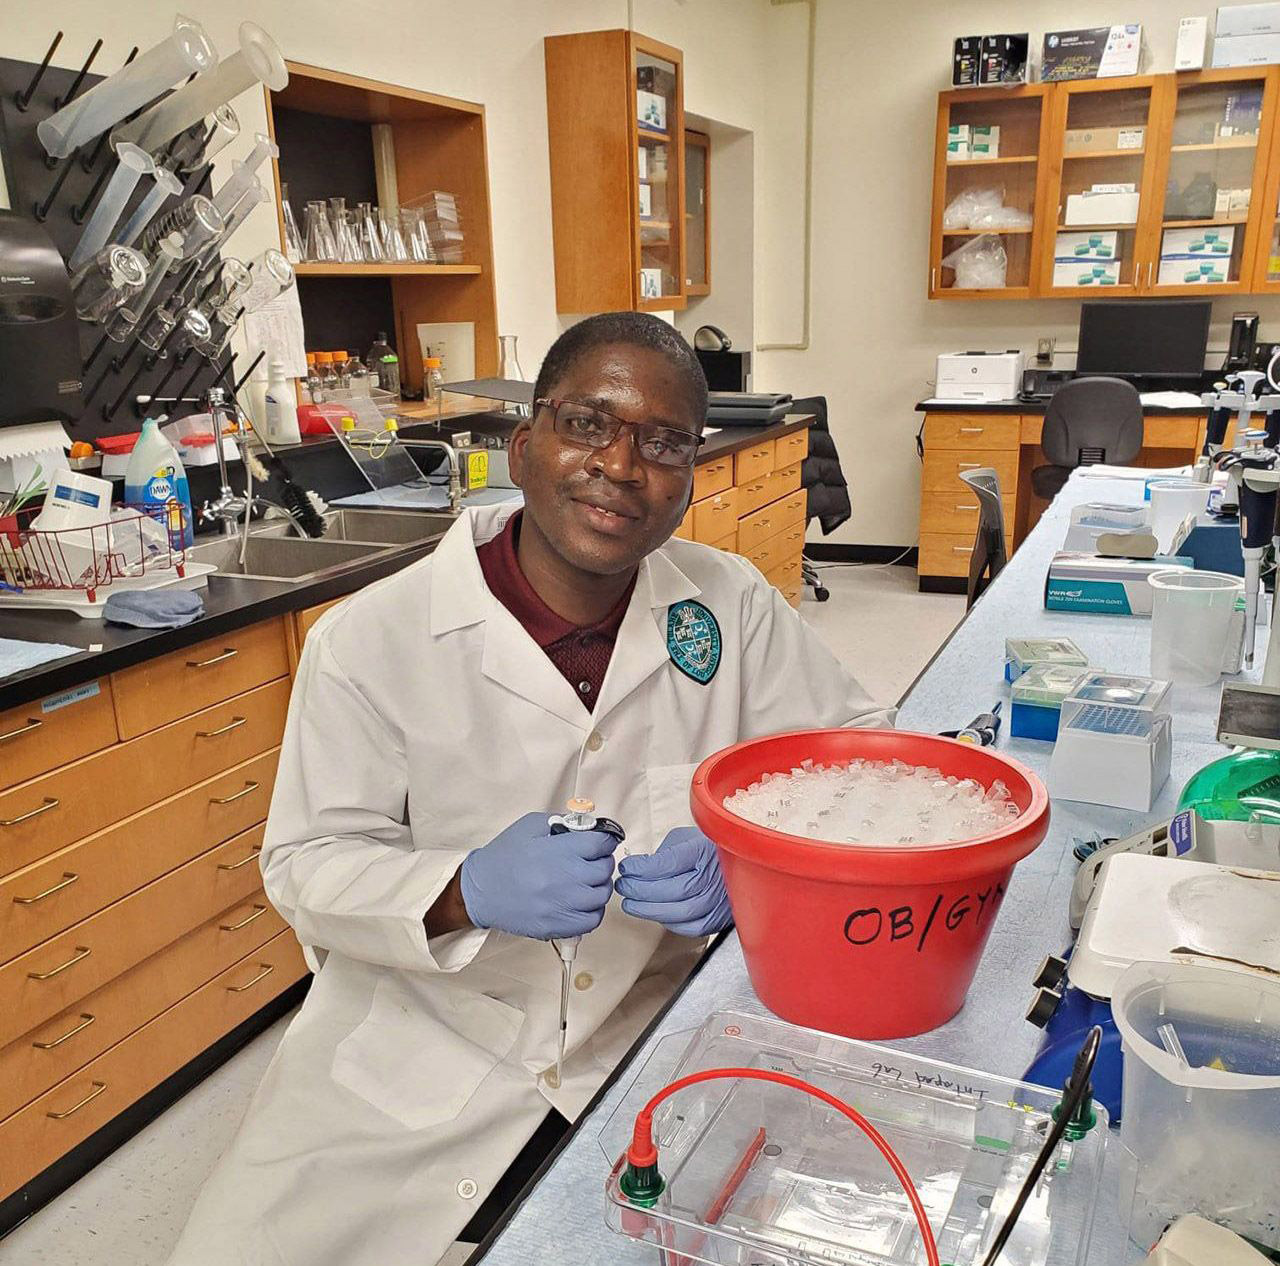 Benjamin Bhunu seated at counter in lab